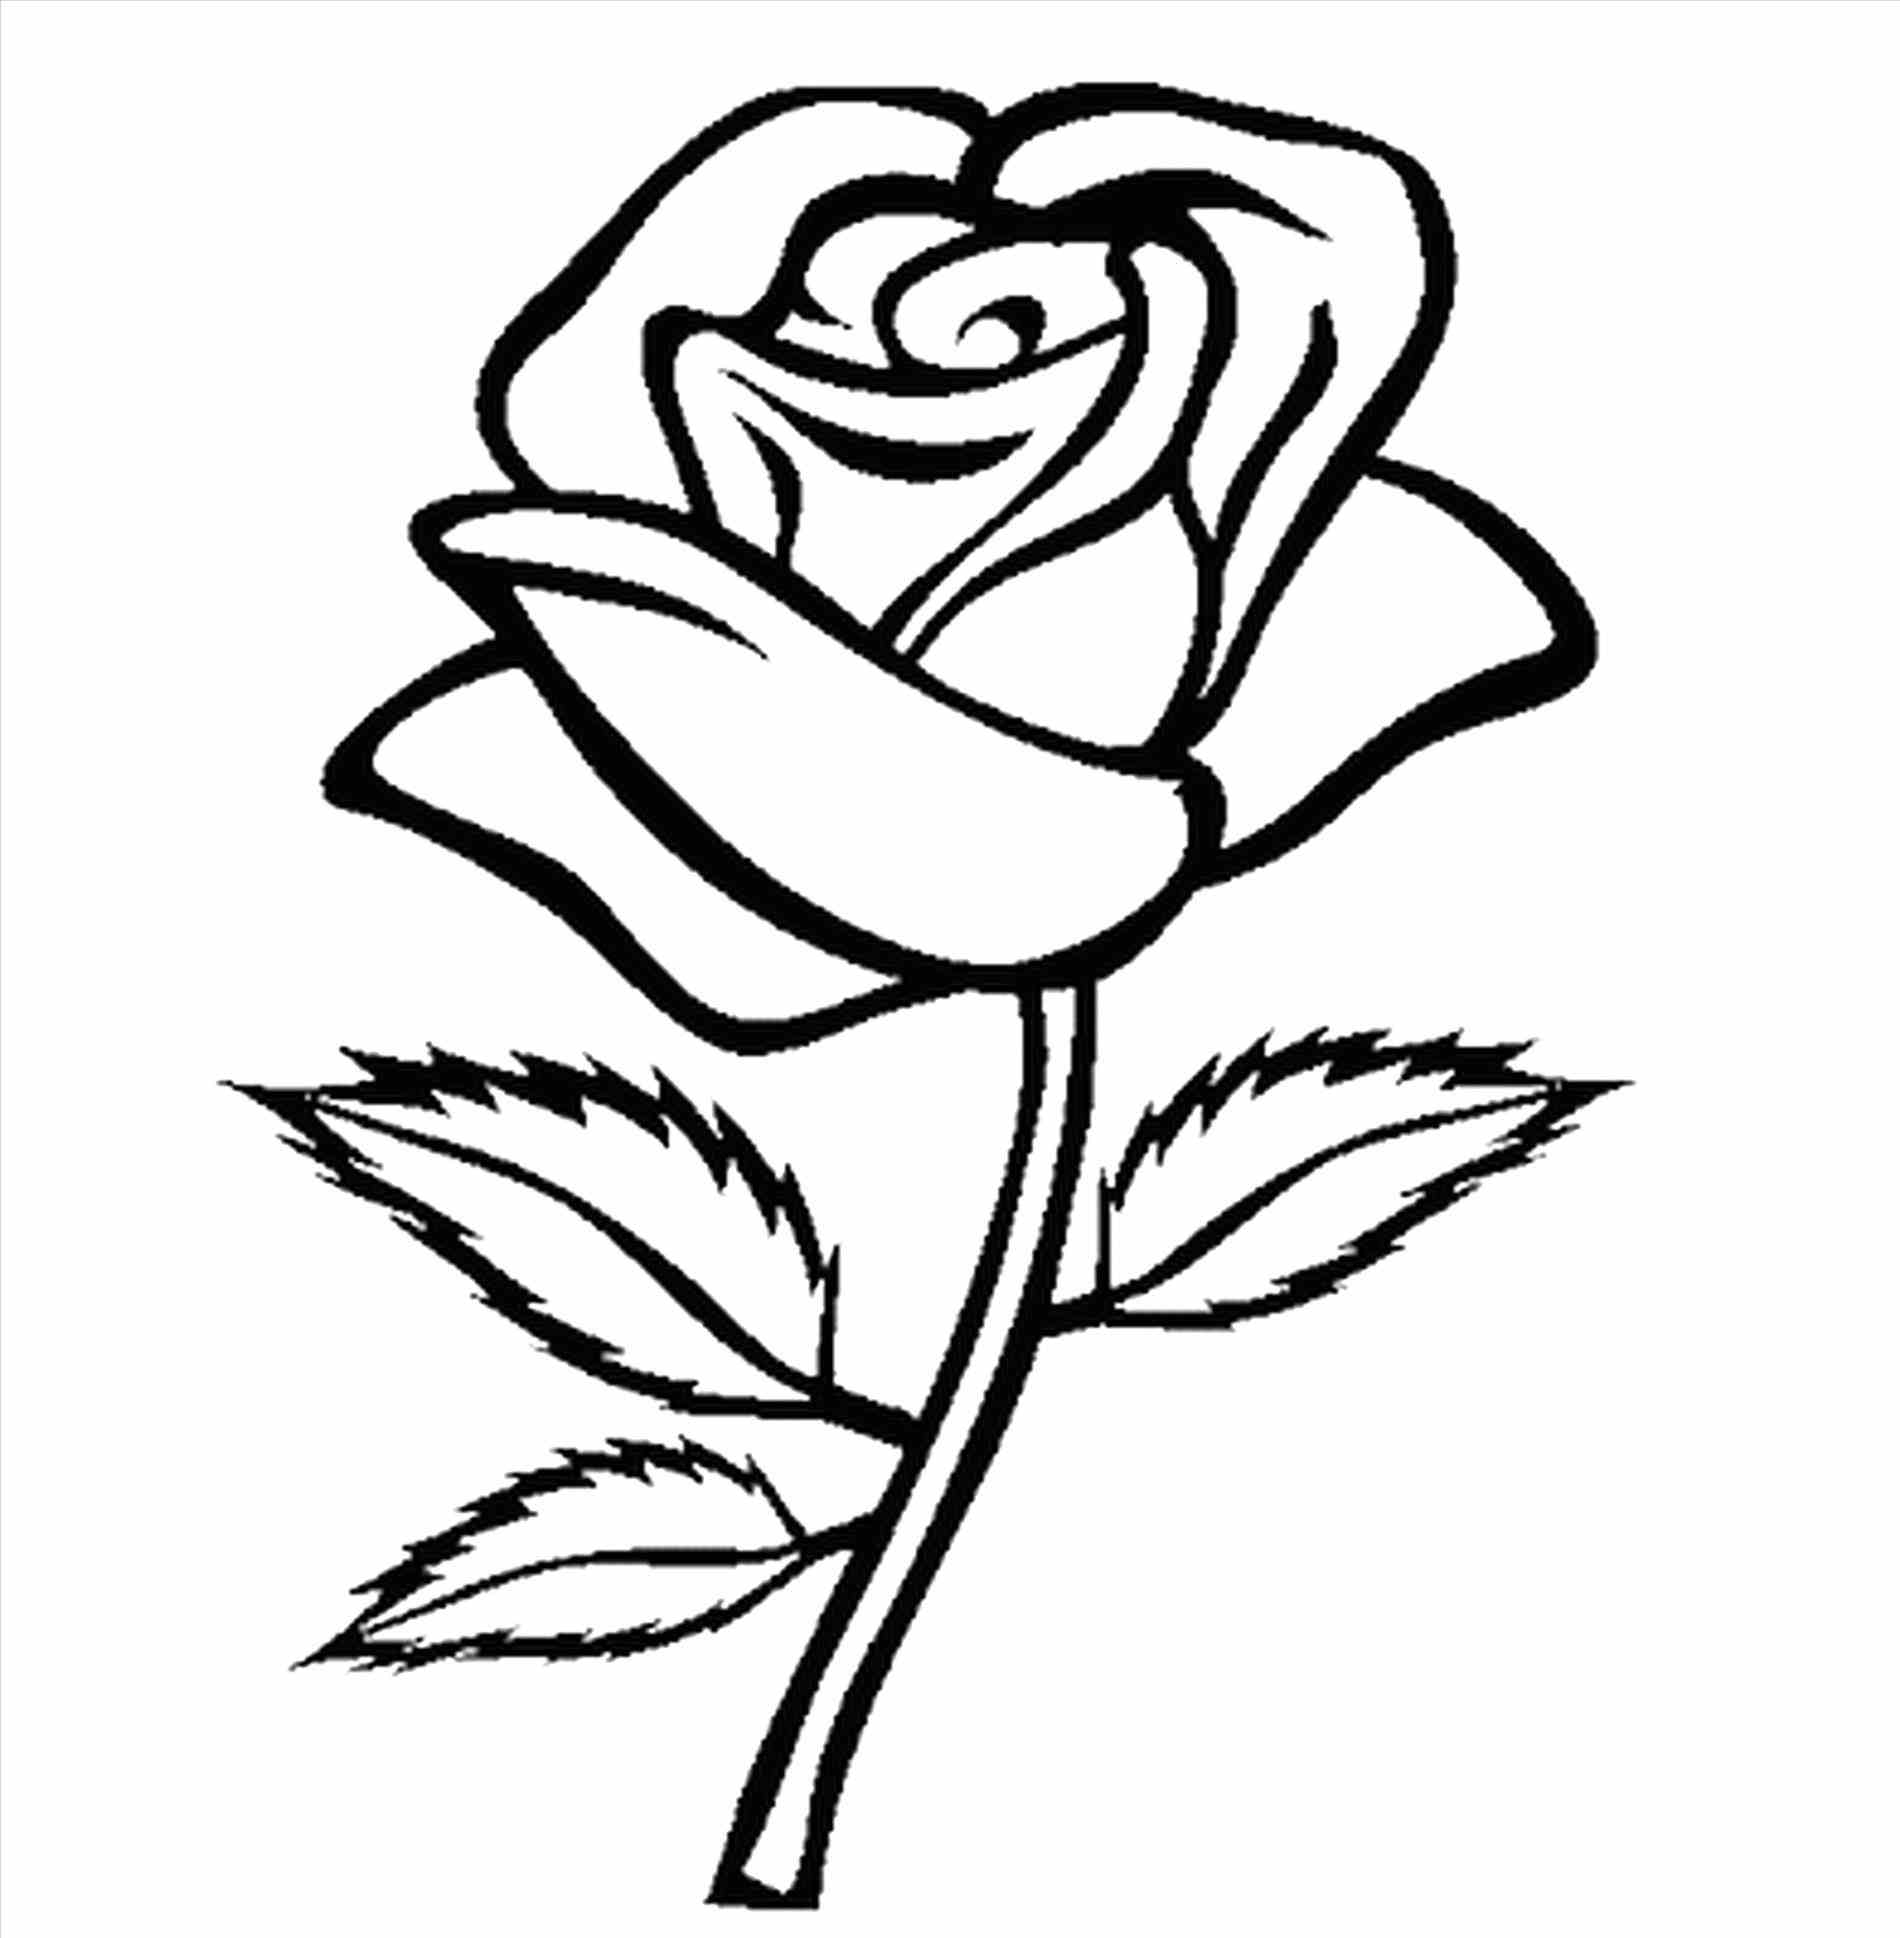 1900x1938 How To Draw Hearts With Roses Step By Step Urldircom